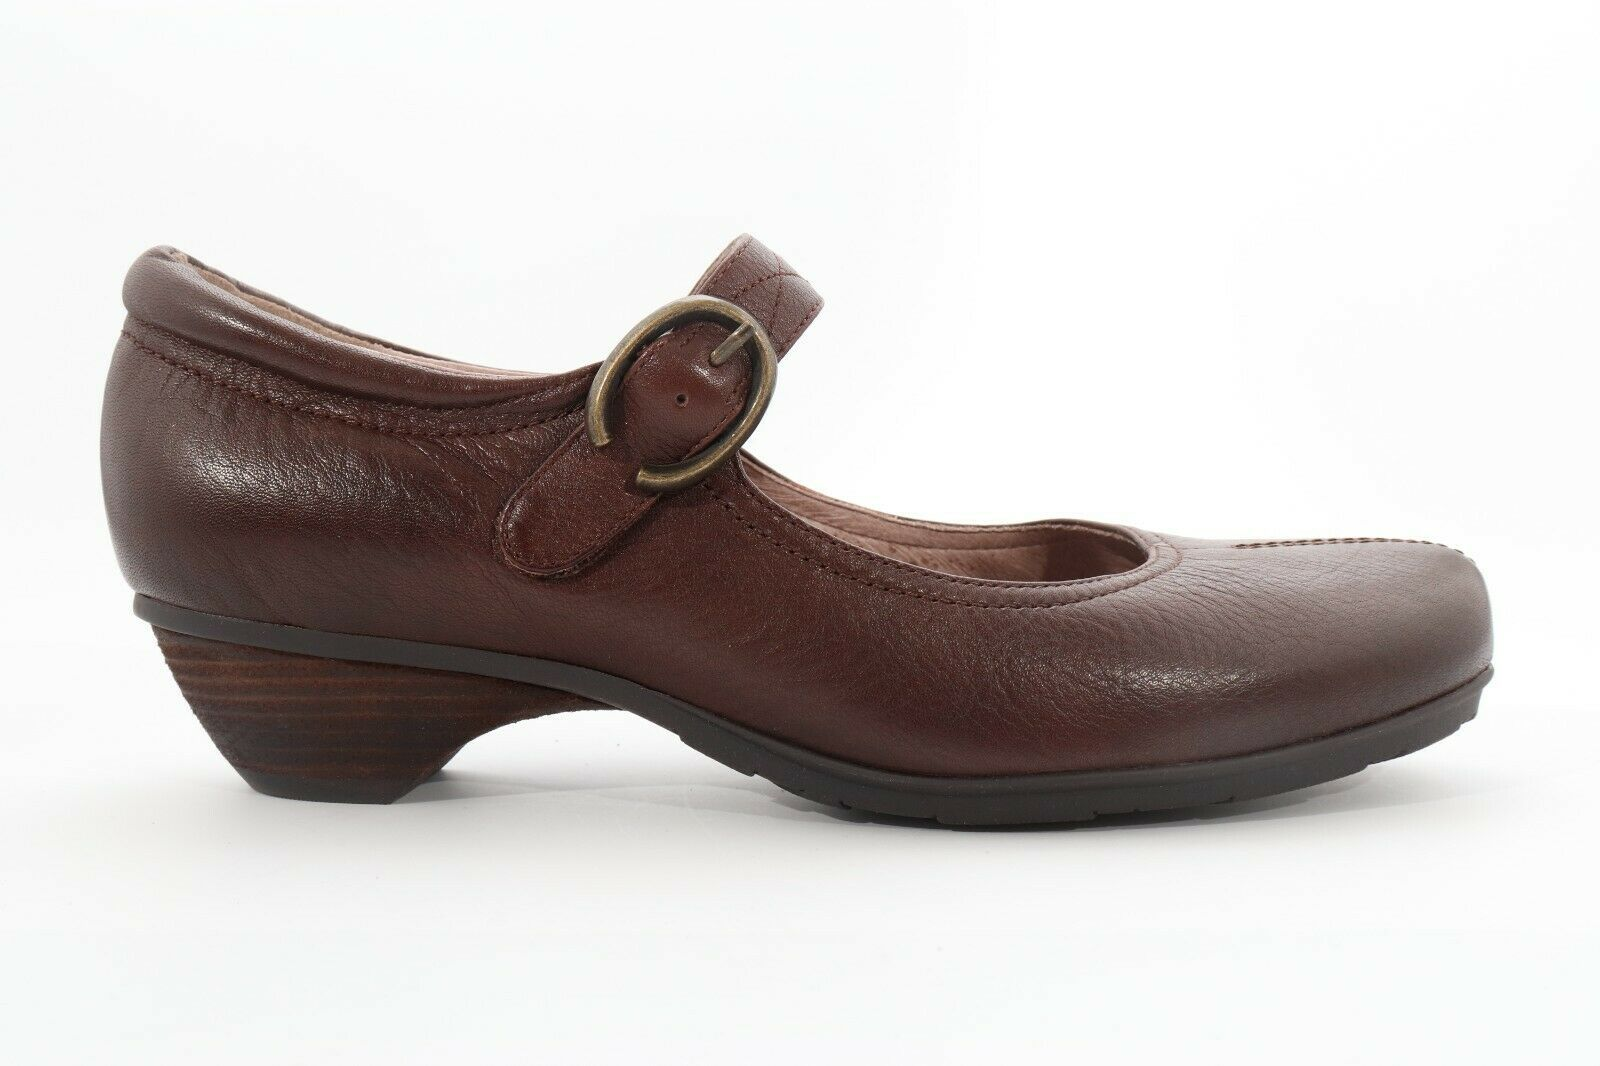 Abeo Nadine Mary Jane Pumps Brown Size 8 Neutral Footbed ( EPB )4360 - $80.00